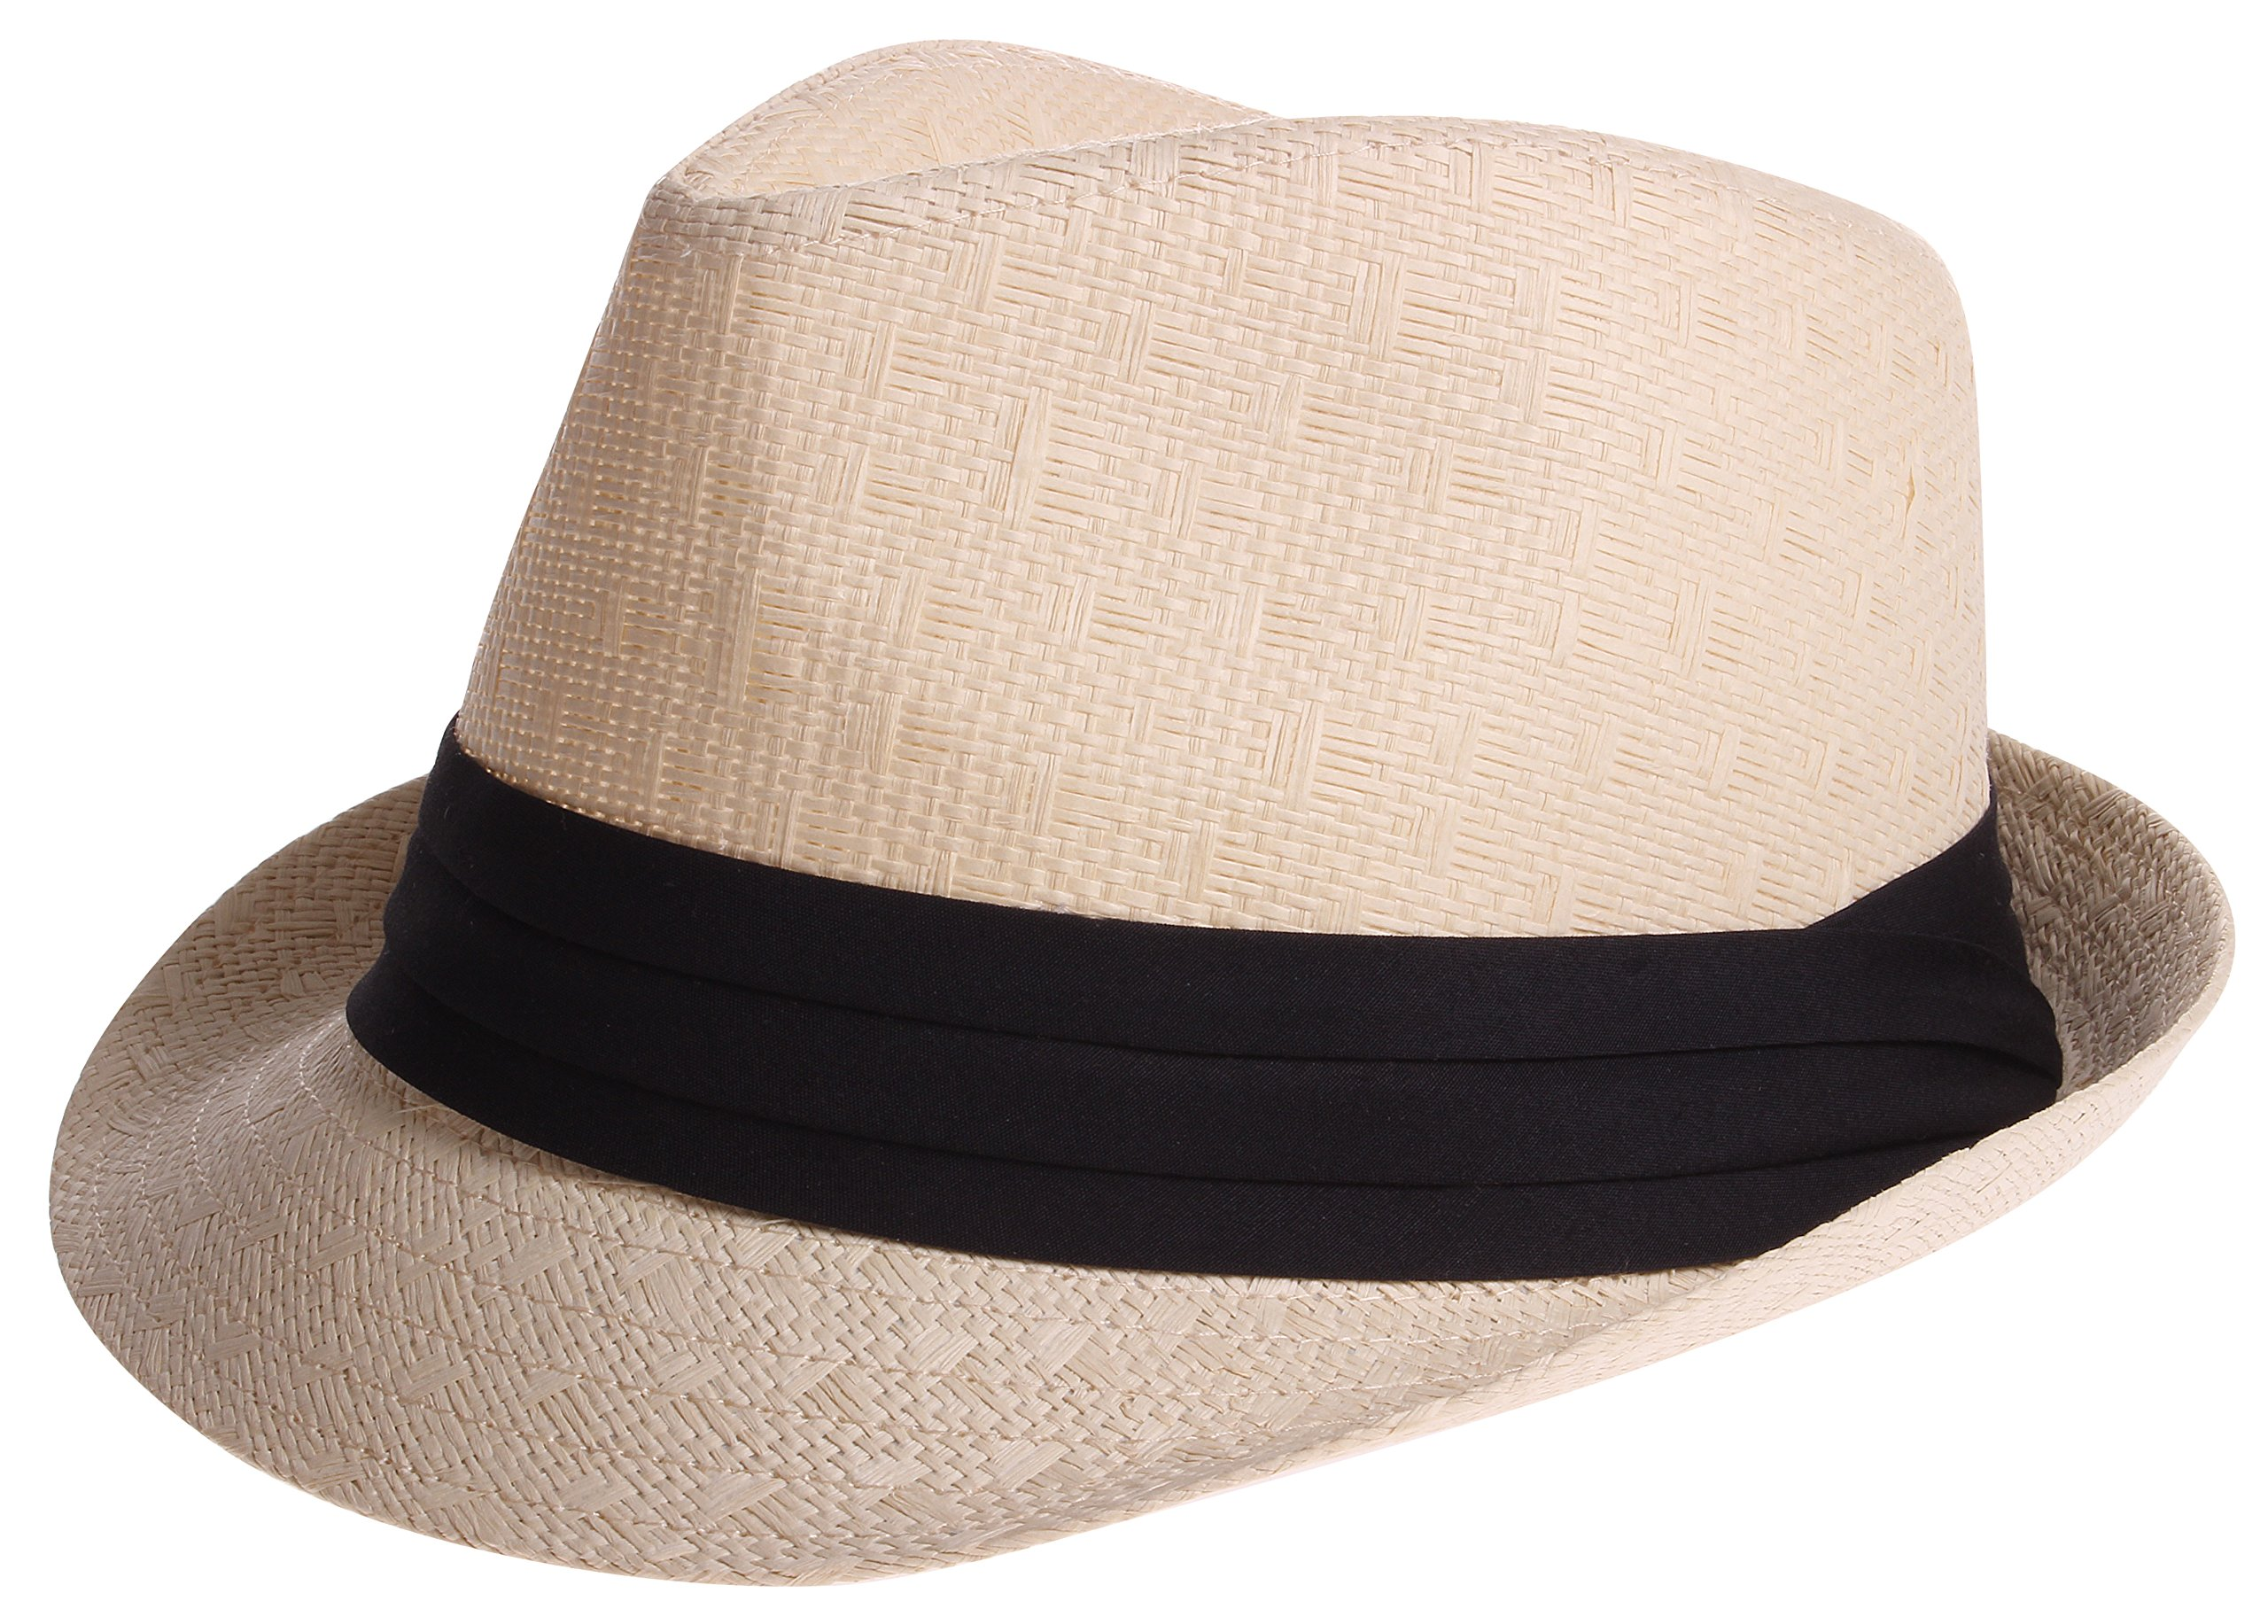 Enimay Vintage Unisex Fedora Hat Classic Timeless Light Weight 2118 - Beige S/m by Enimay